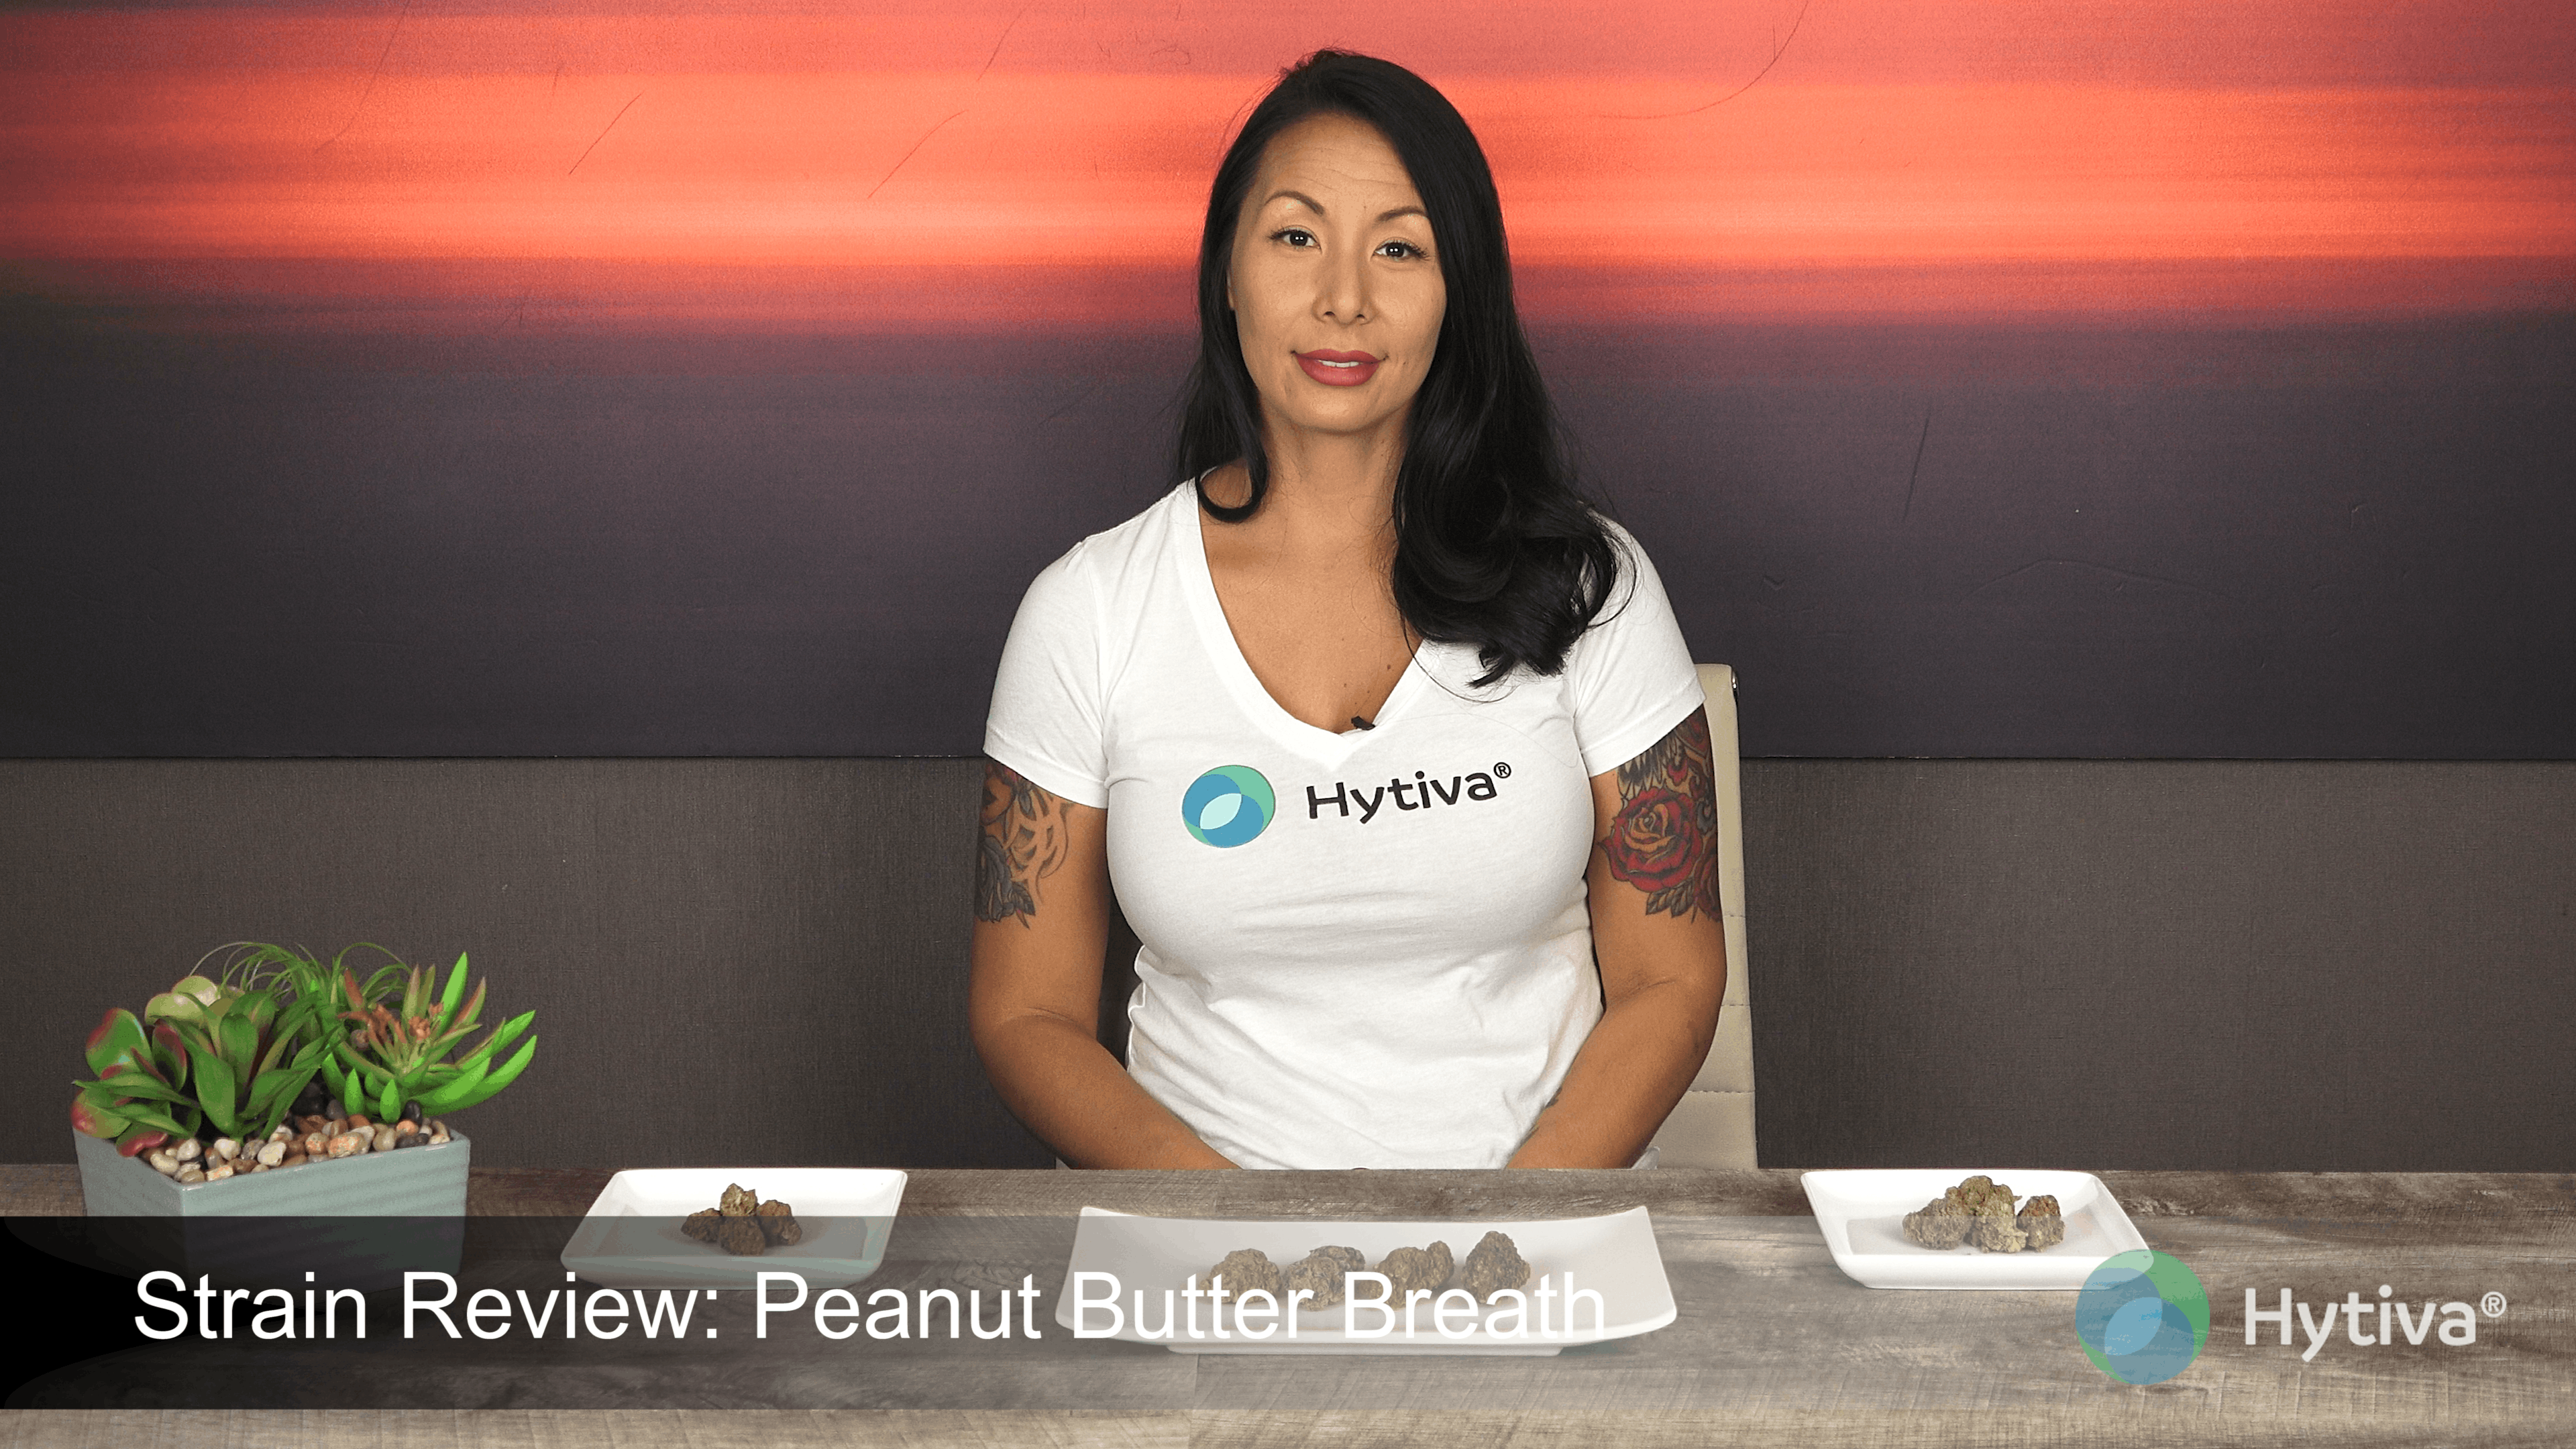 Strain Review : Peanut Butter Breath